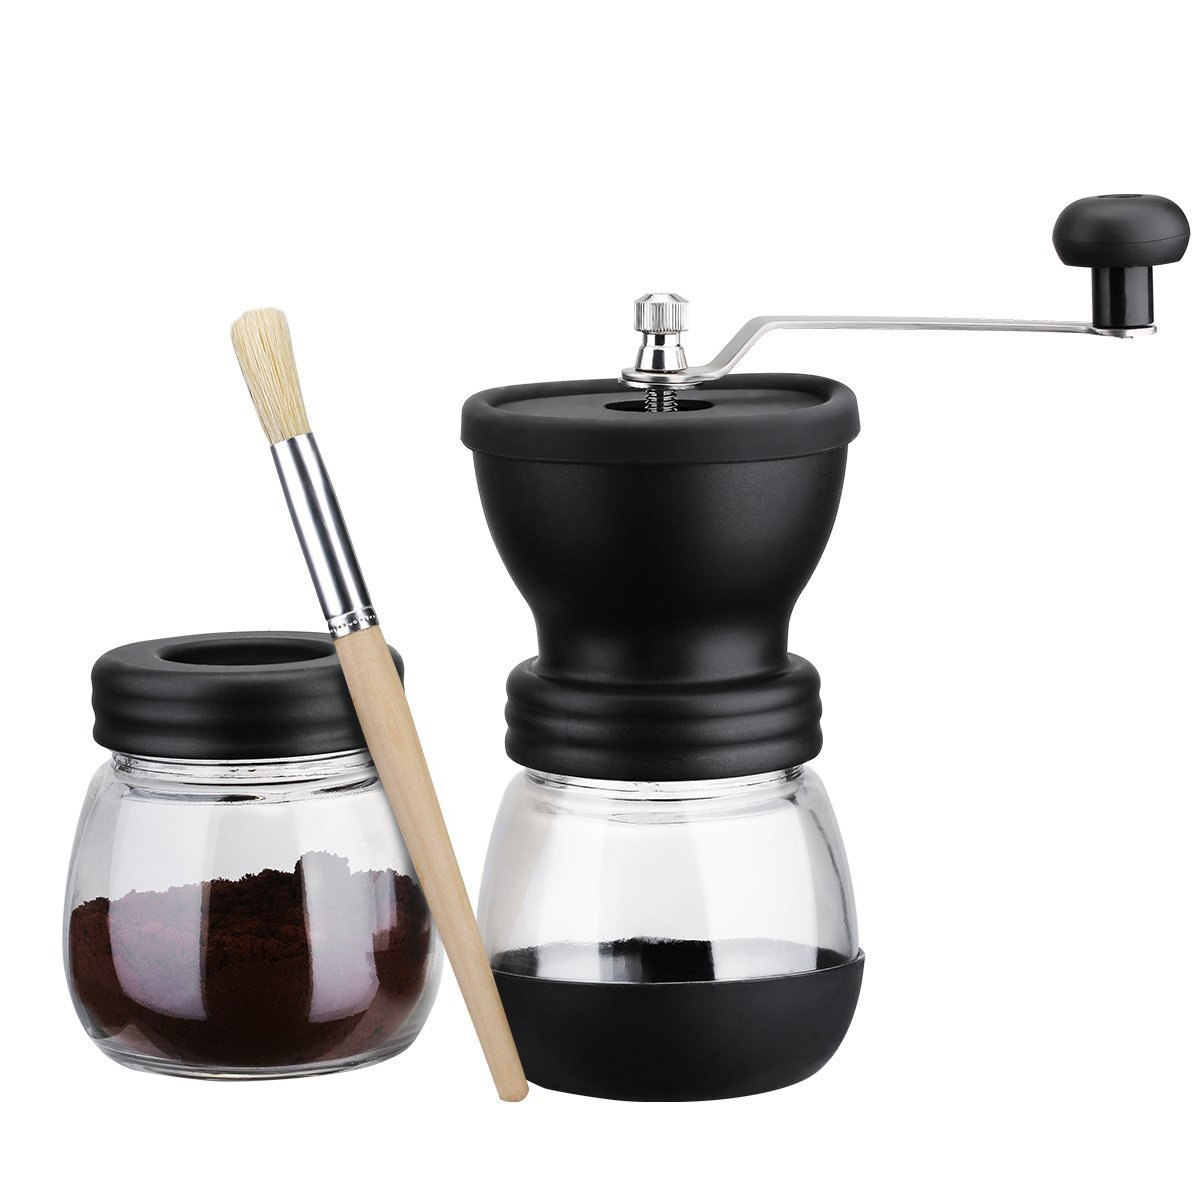 Manual Coffee Grinder with Storage Jar Soft brush Conical Ceramic Burr Quiet with 2 Glass Sealed Pots Portable Coffee Mill tool 680ml glass storage jar purple